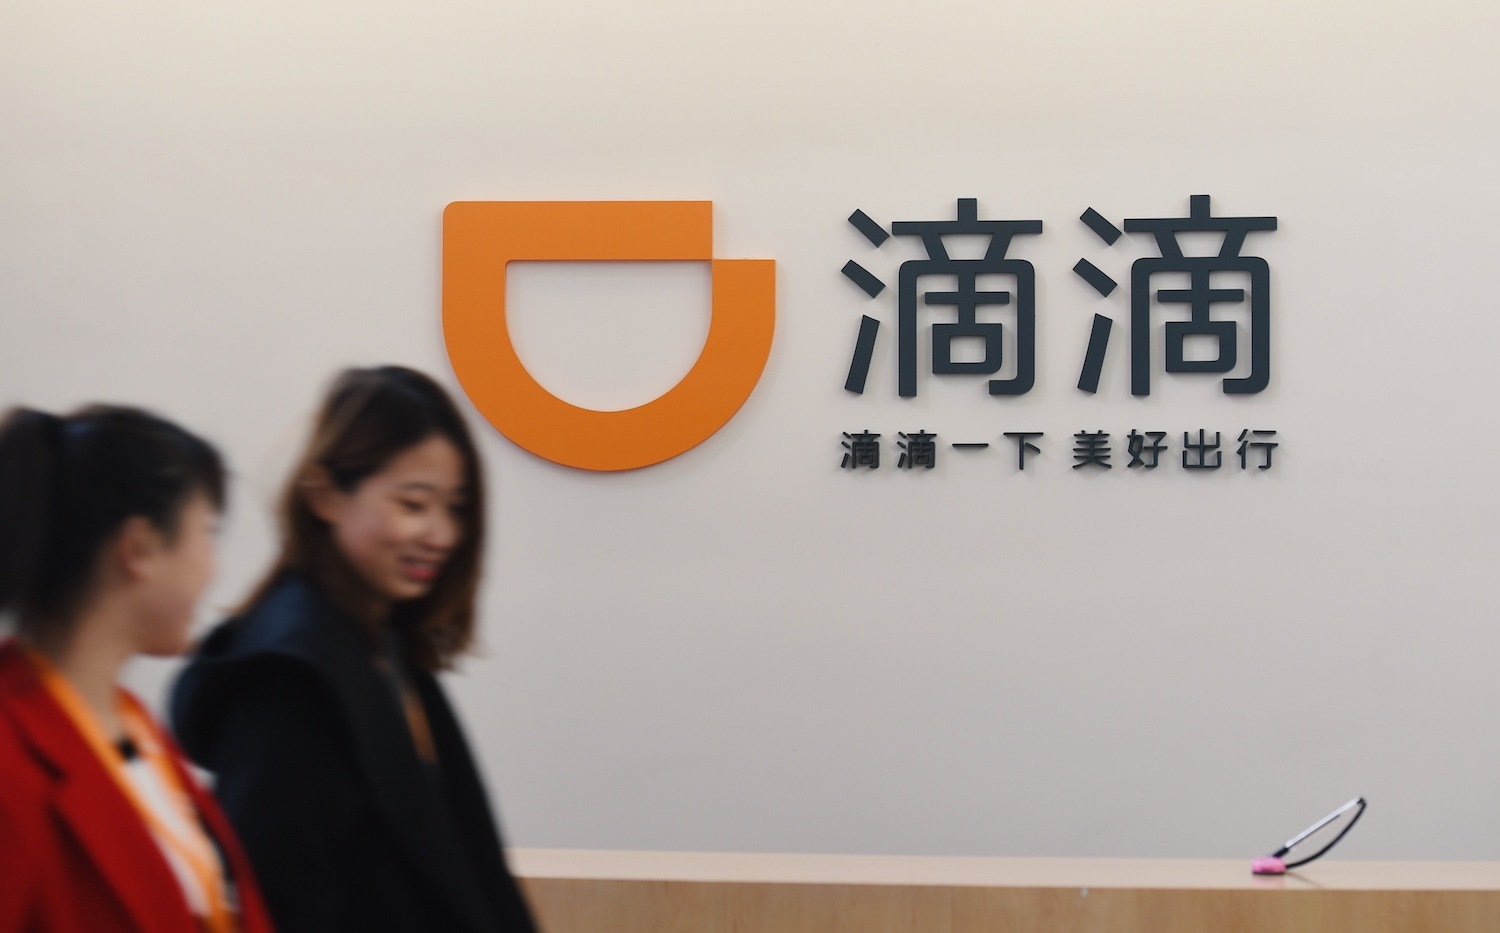 Didi Chuxing seeks US listing of its grocery delivery arm, source says